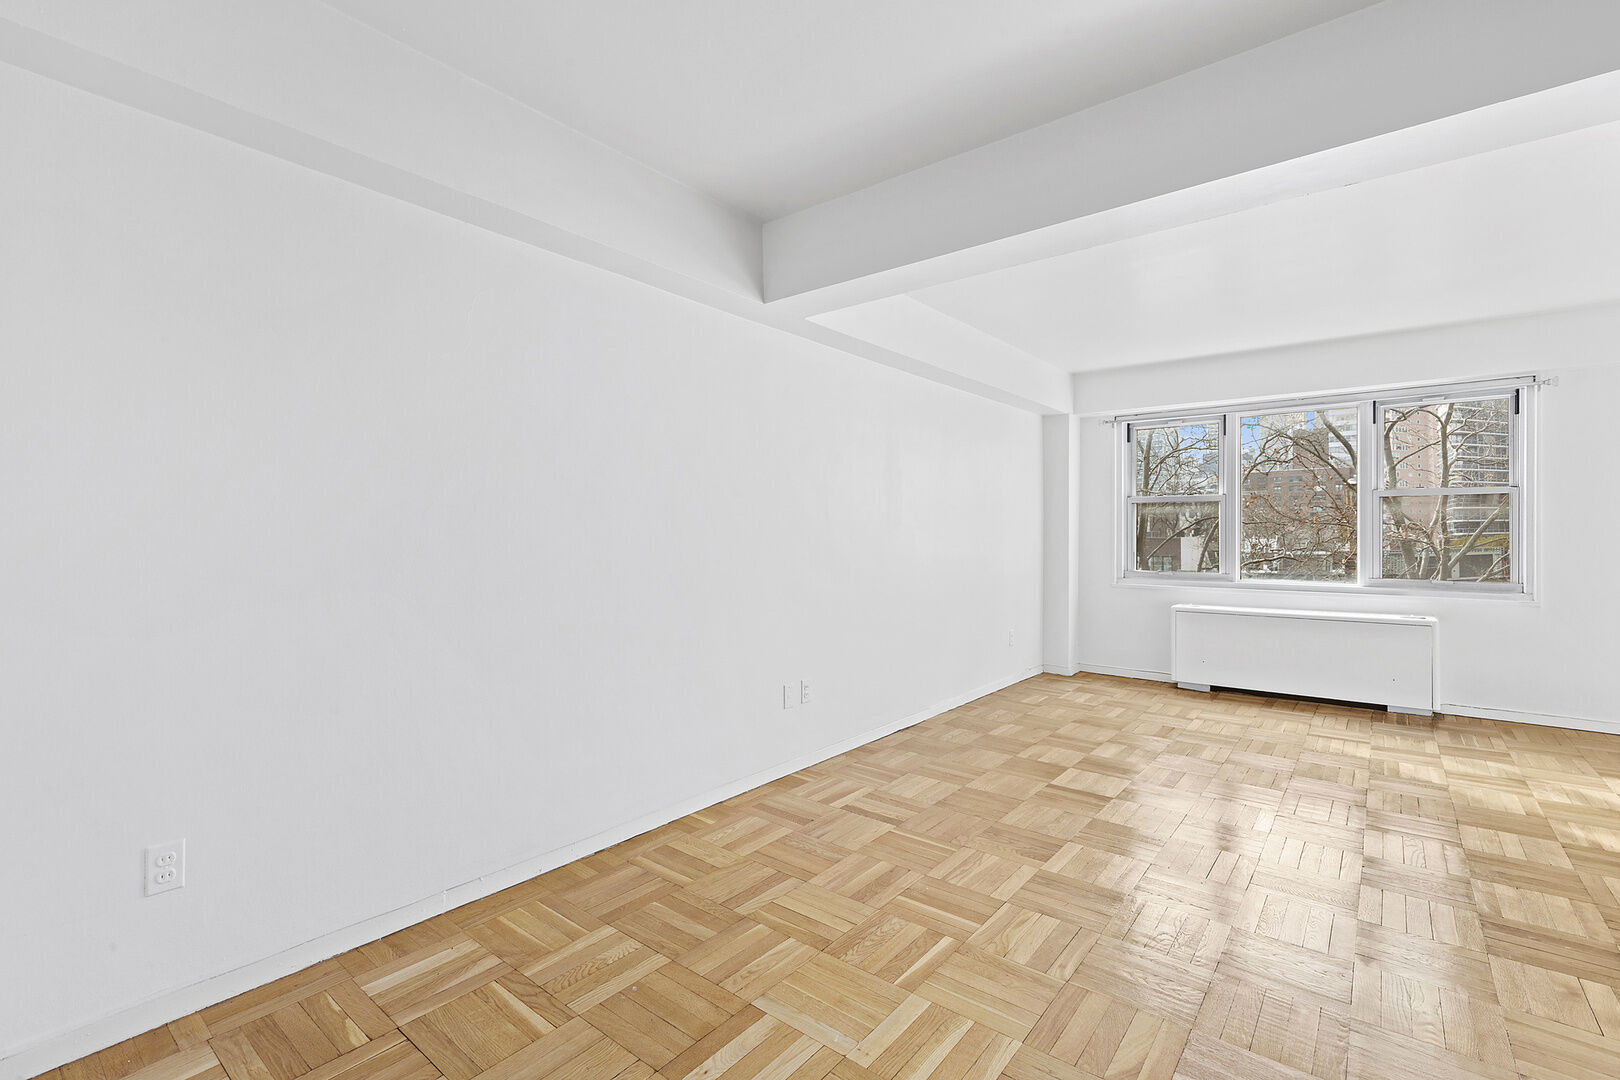 Apartment for sale at 210 East 63rd Street, Apt 7-D